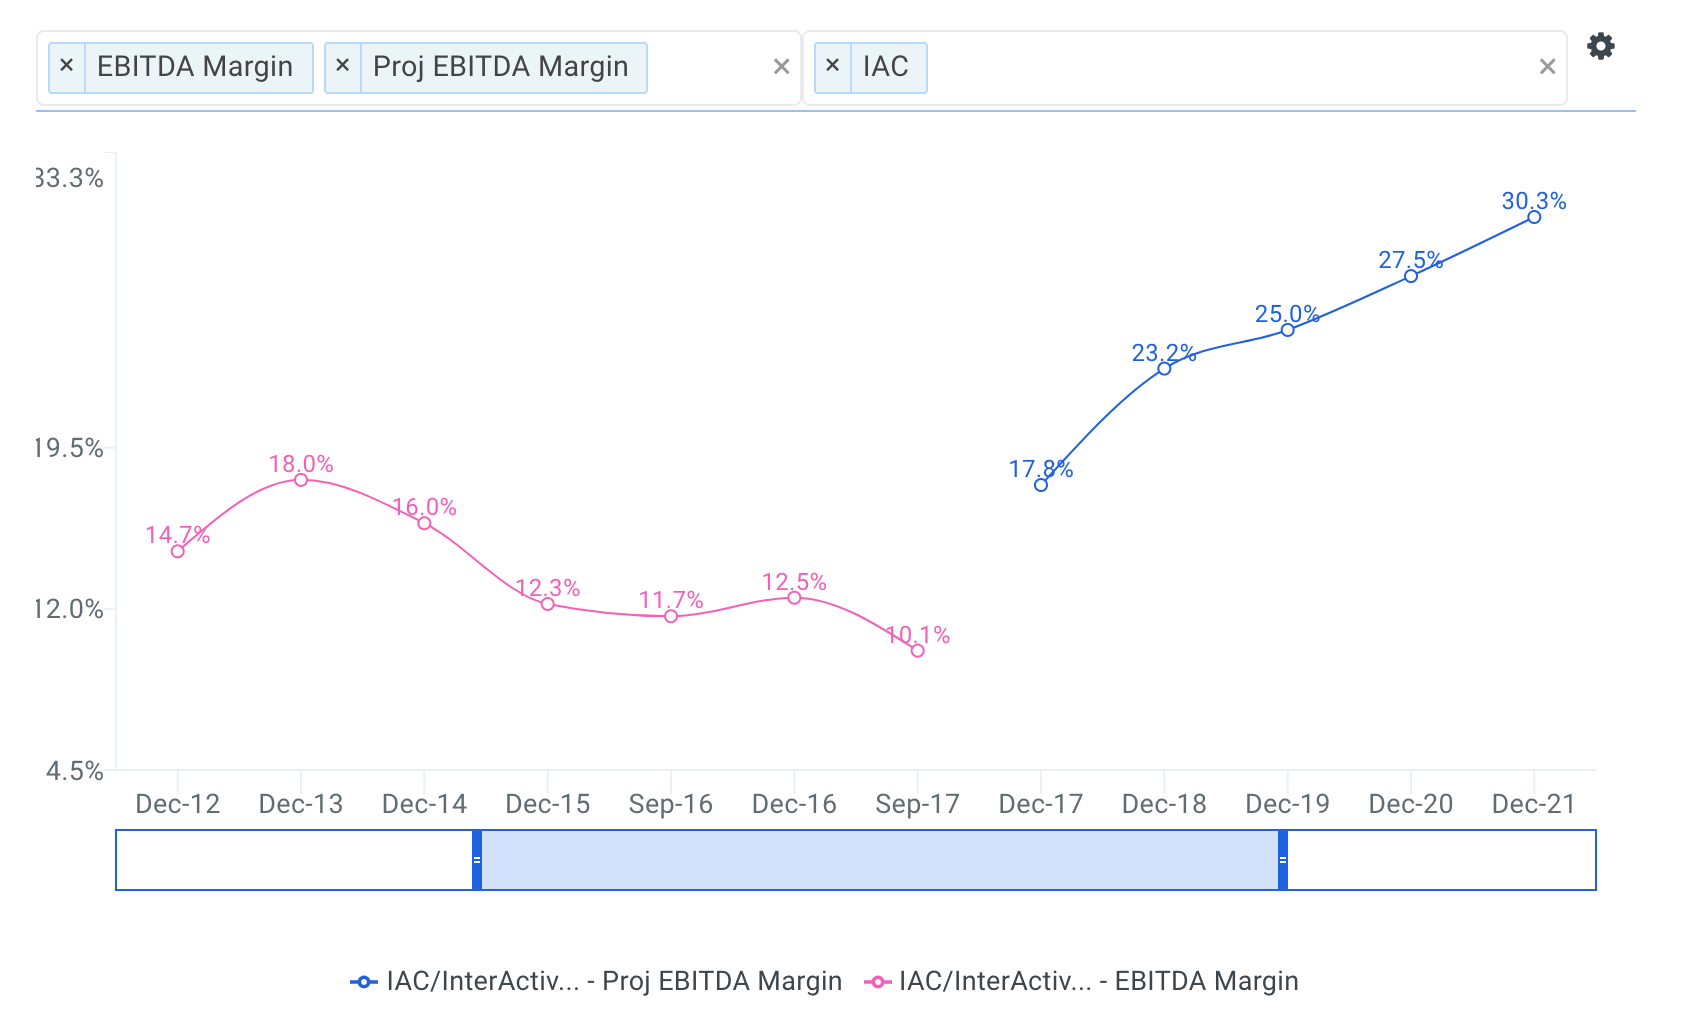 InterActiveCorp Historical and Projected EBITDA Margin Chart